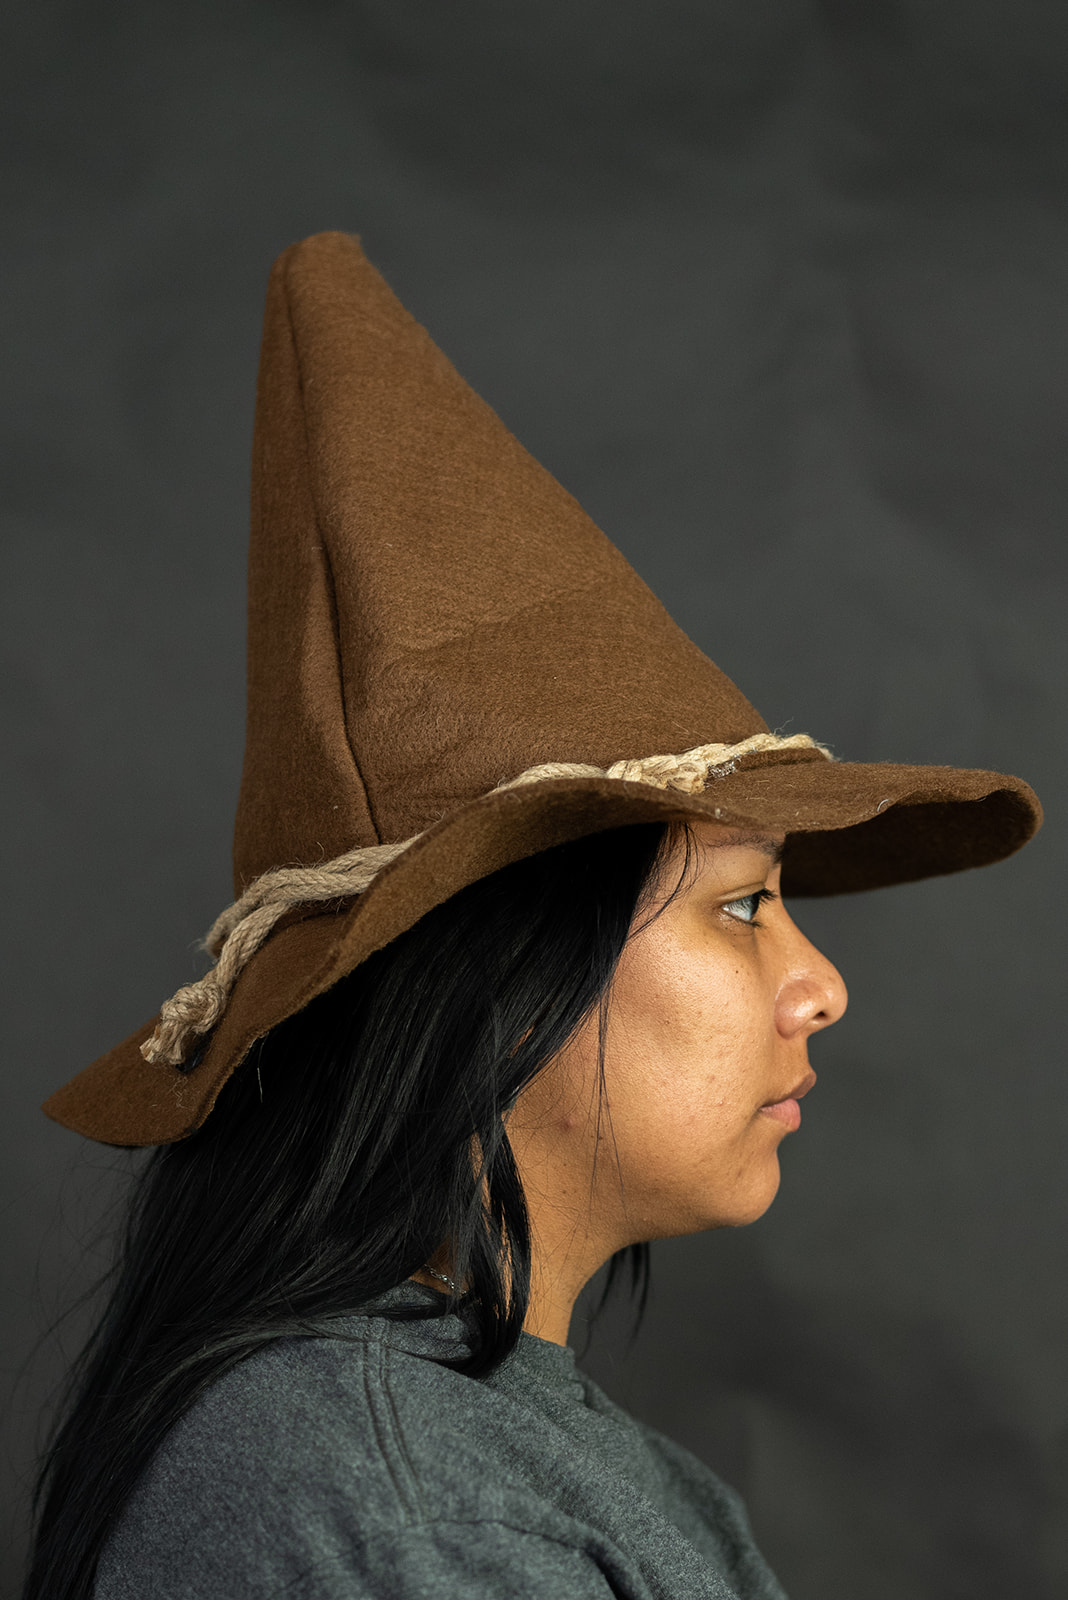 thumbnail 13 - Adult Scarecrow Hat Deluxe Felt Oktoberfest Wizard Witch Hillbilly Hat Costume